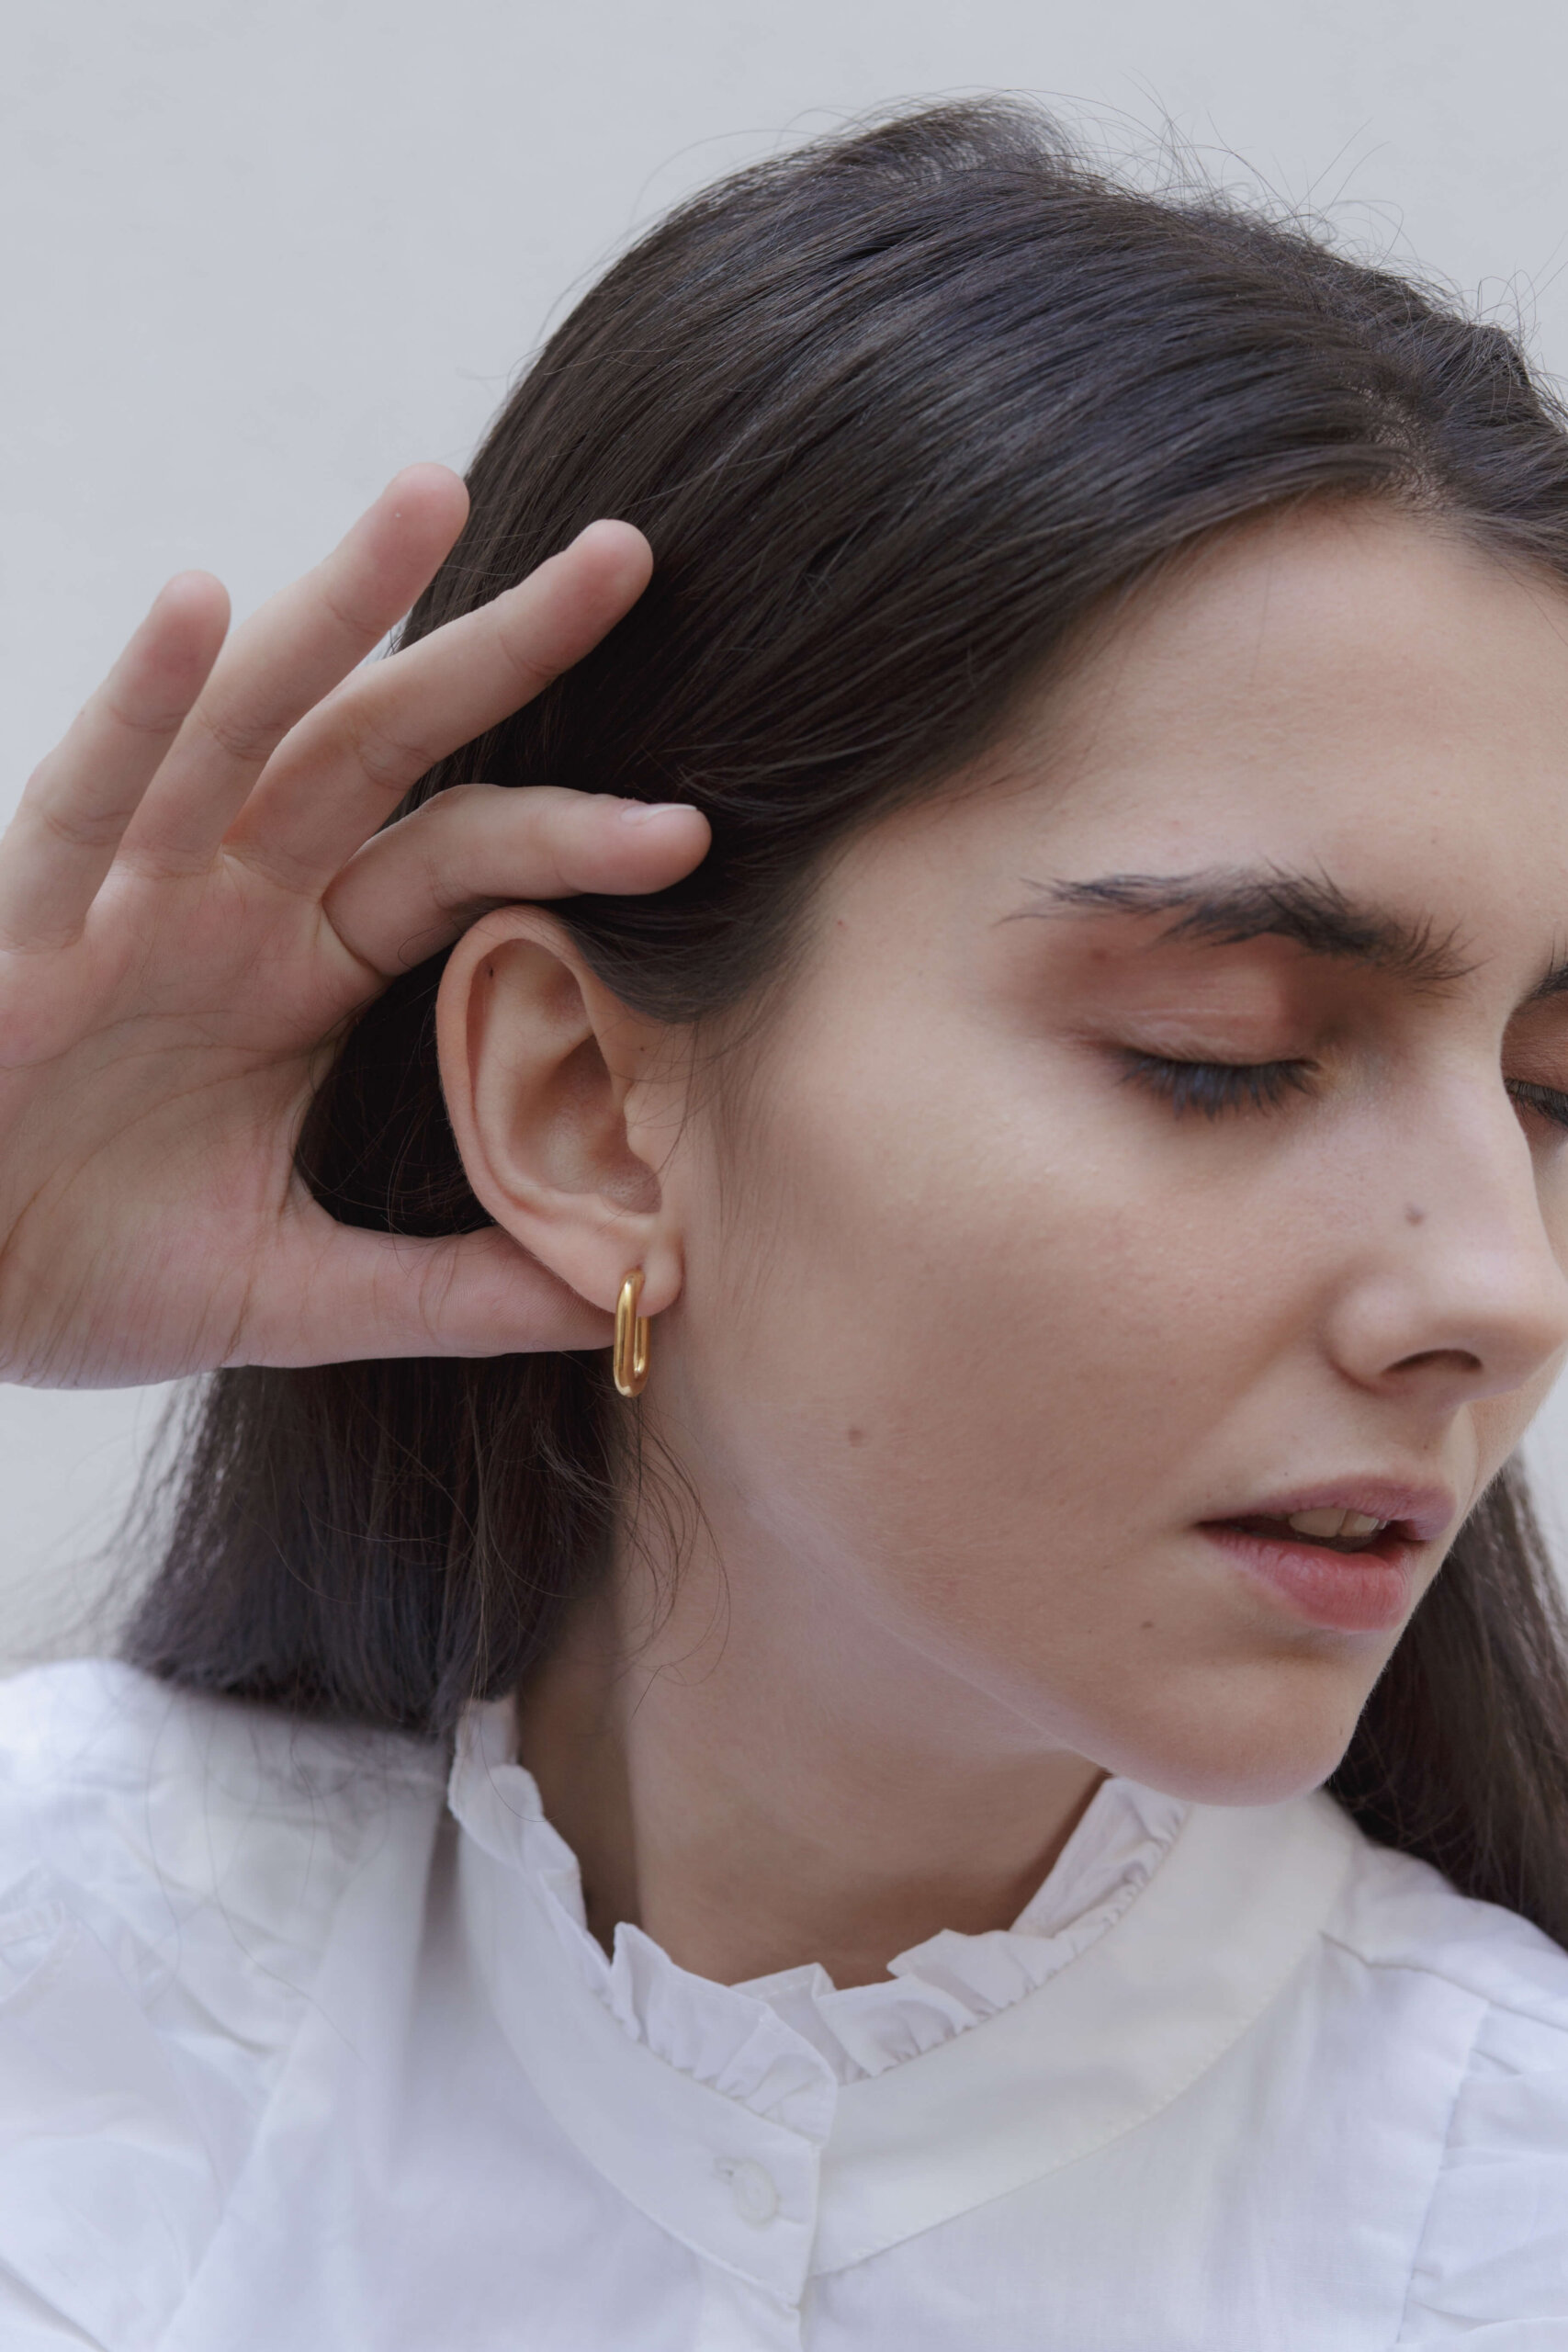 the-small-golden-link-earring-by-glenda-lopez-lookbook